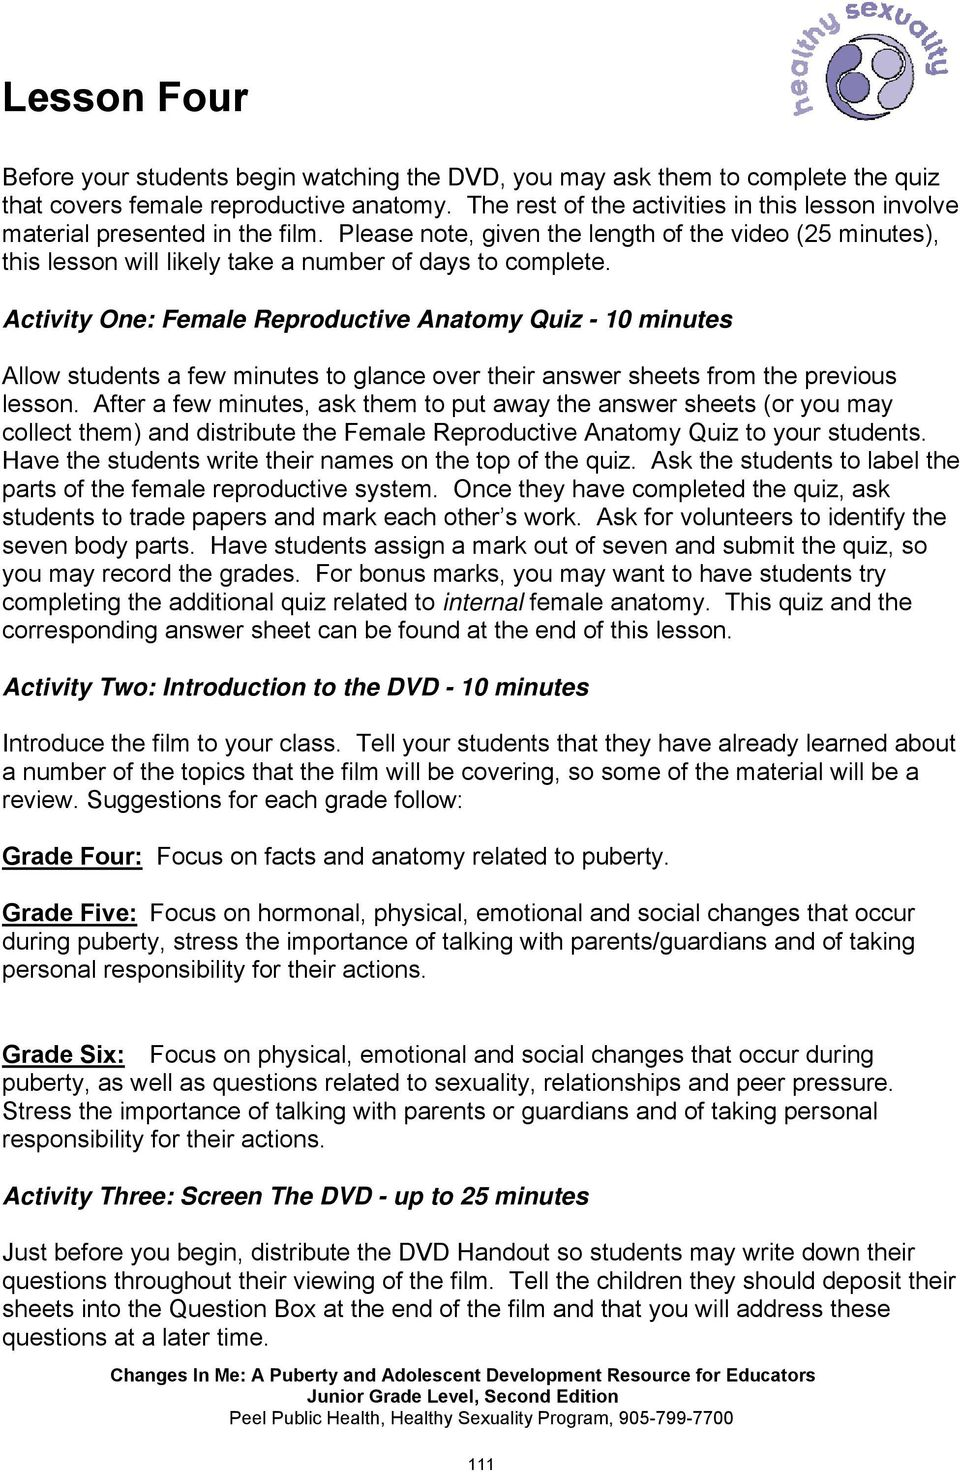 Activity One: Female Reproductive Anatomy Quiz - 10 minutes Allow students a few minutes to glance over their answer sheets from the previous lesson.